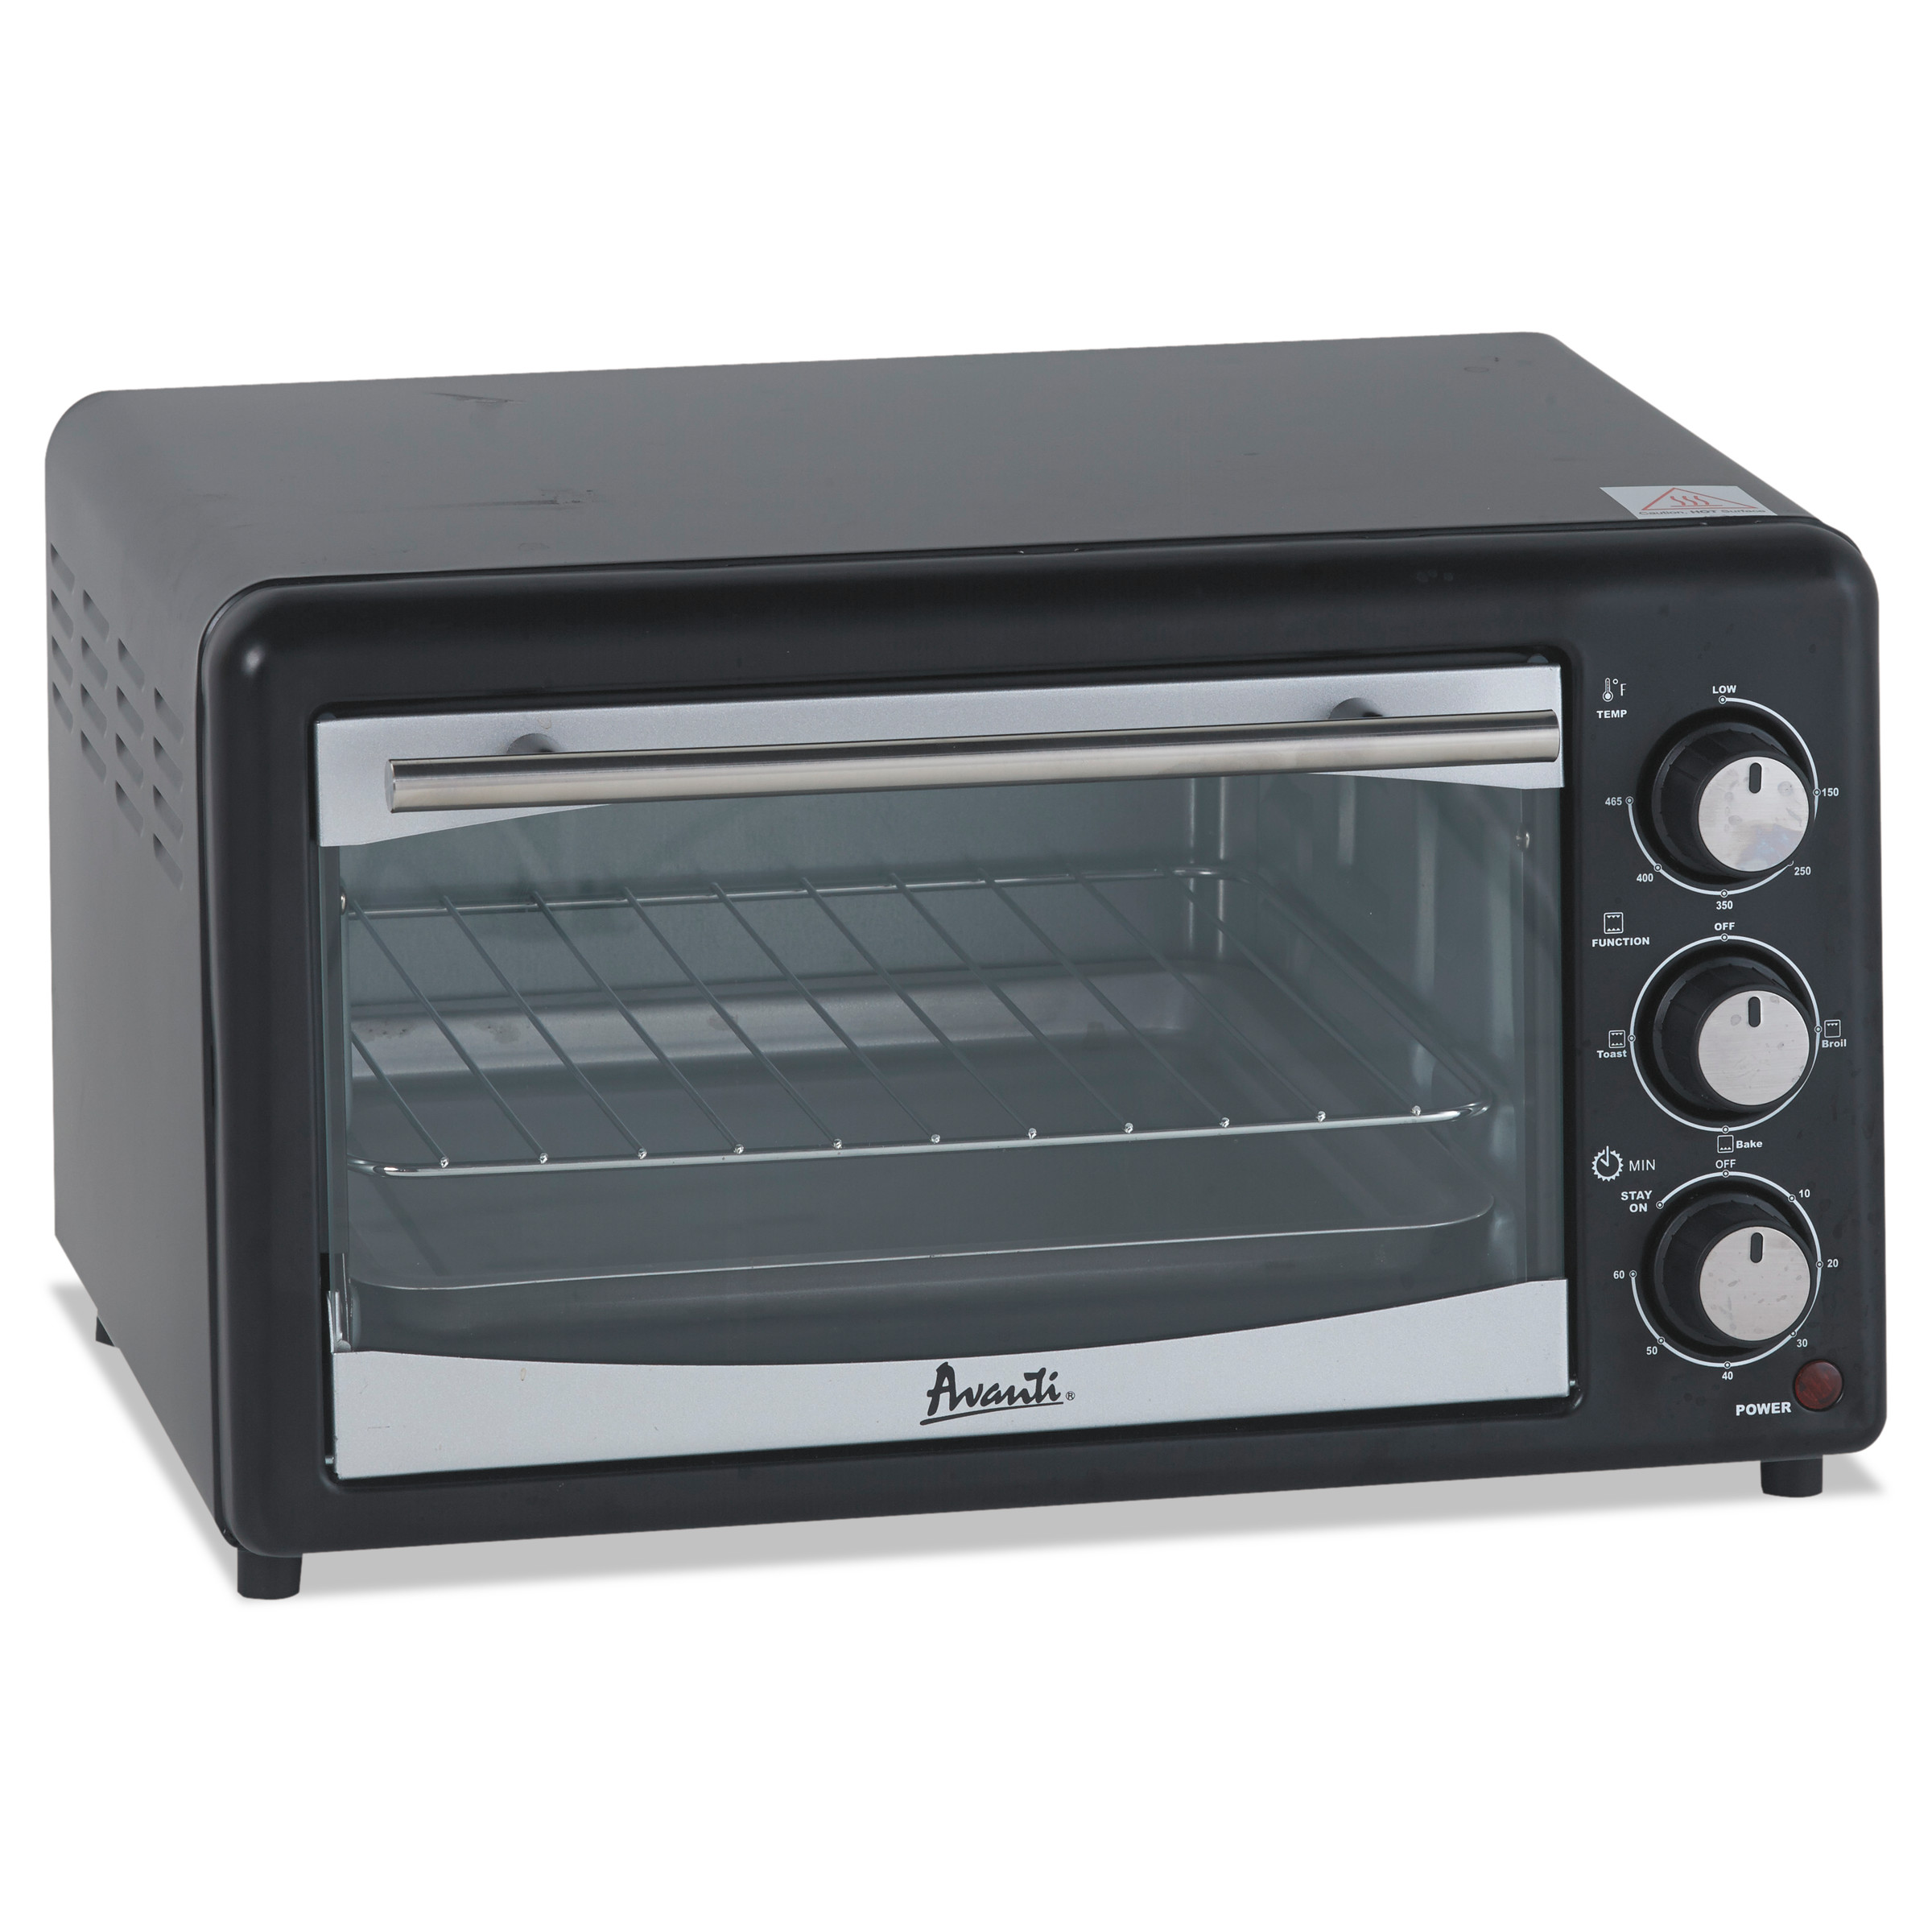 Avanti Toaster Oven, 4 Slice Capacity, Stainless Steel/Black